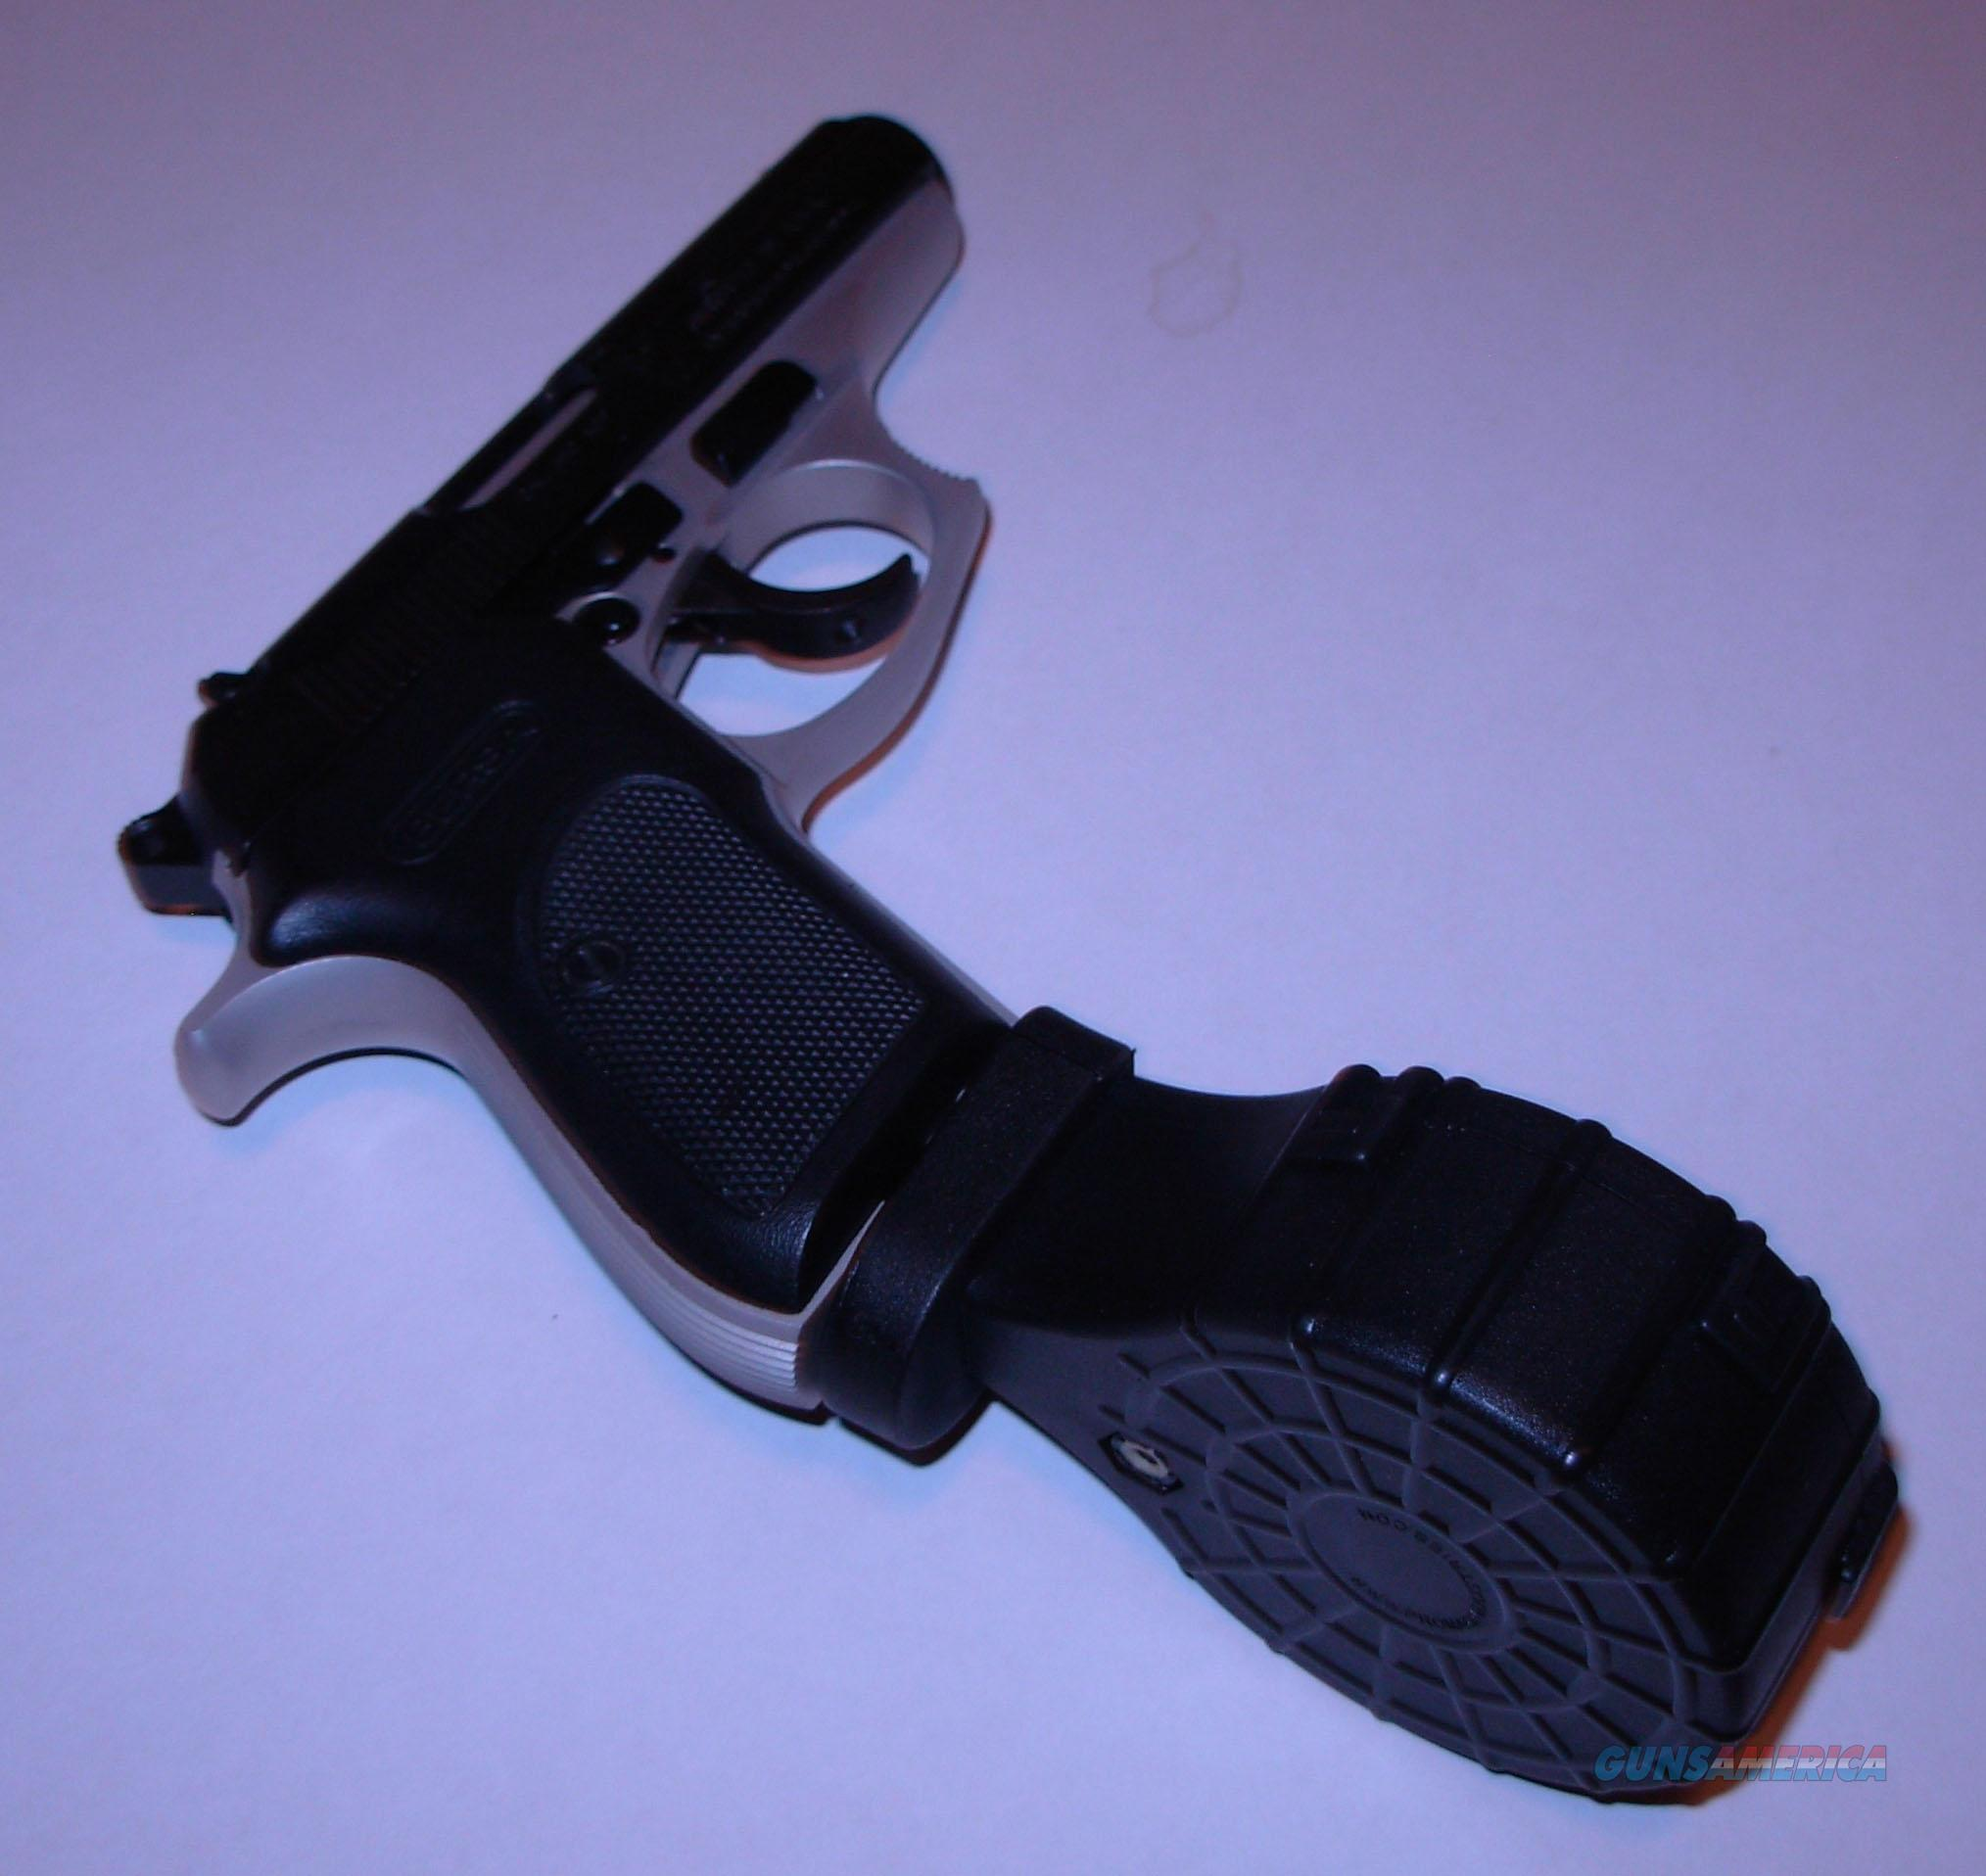 BERSA THUNDER  380 DRUM **** $99 00 WITH FREE SHIPPING!!!!